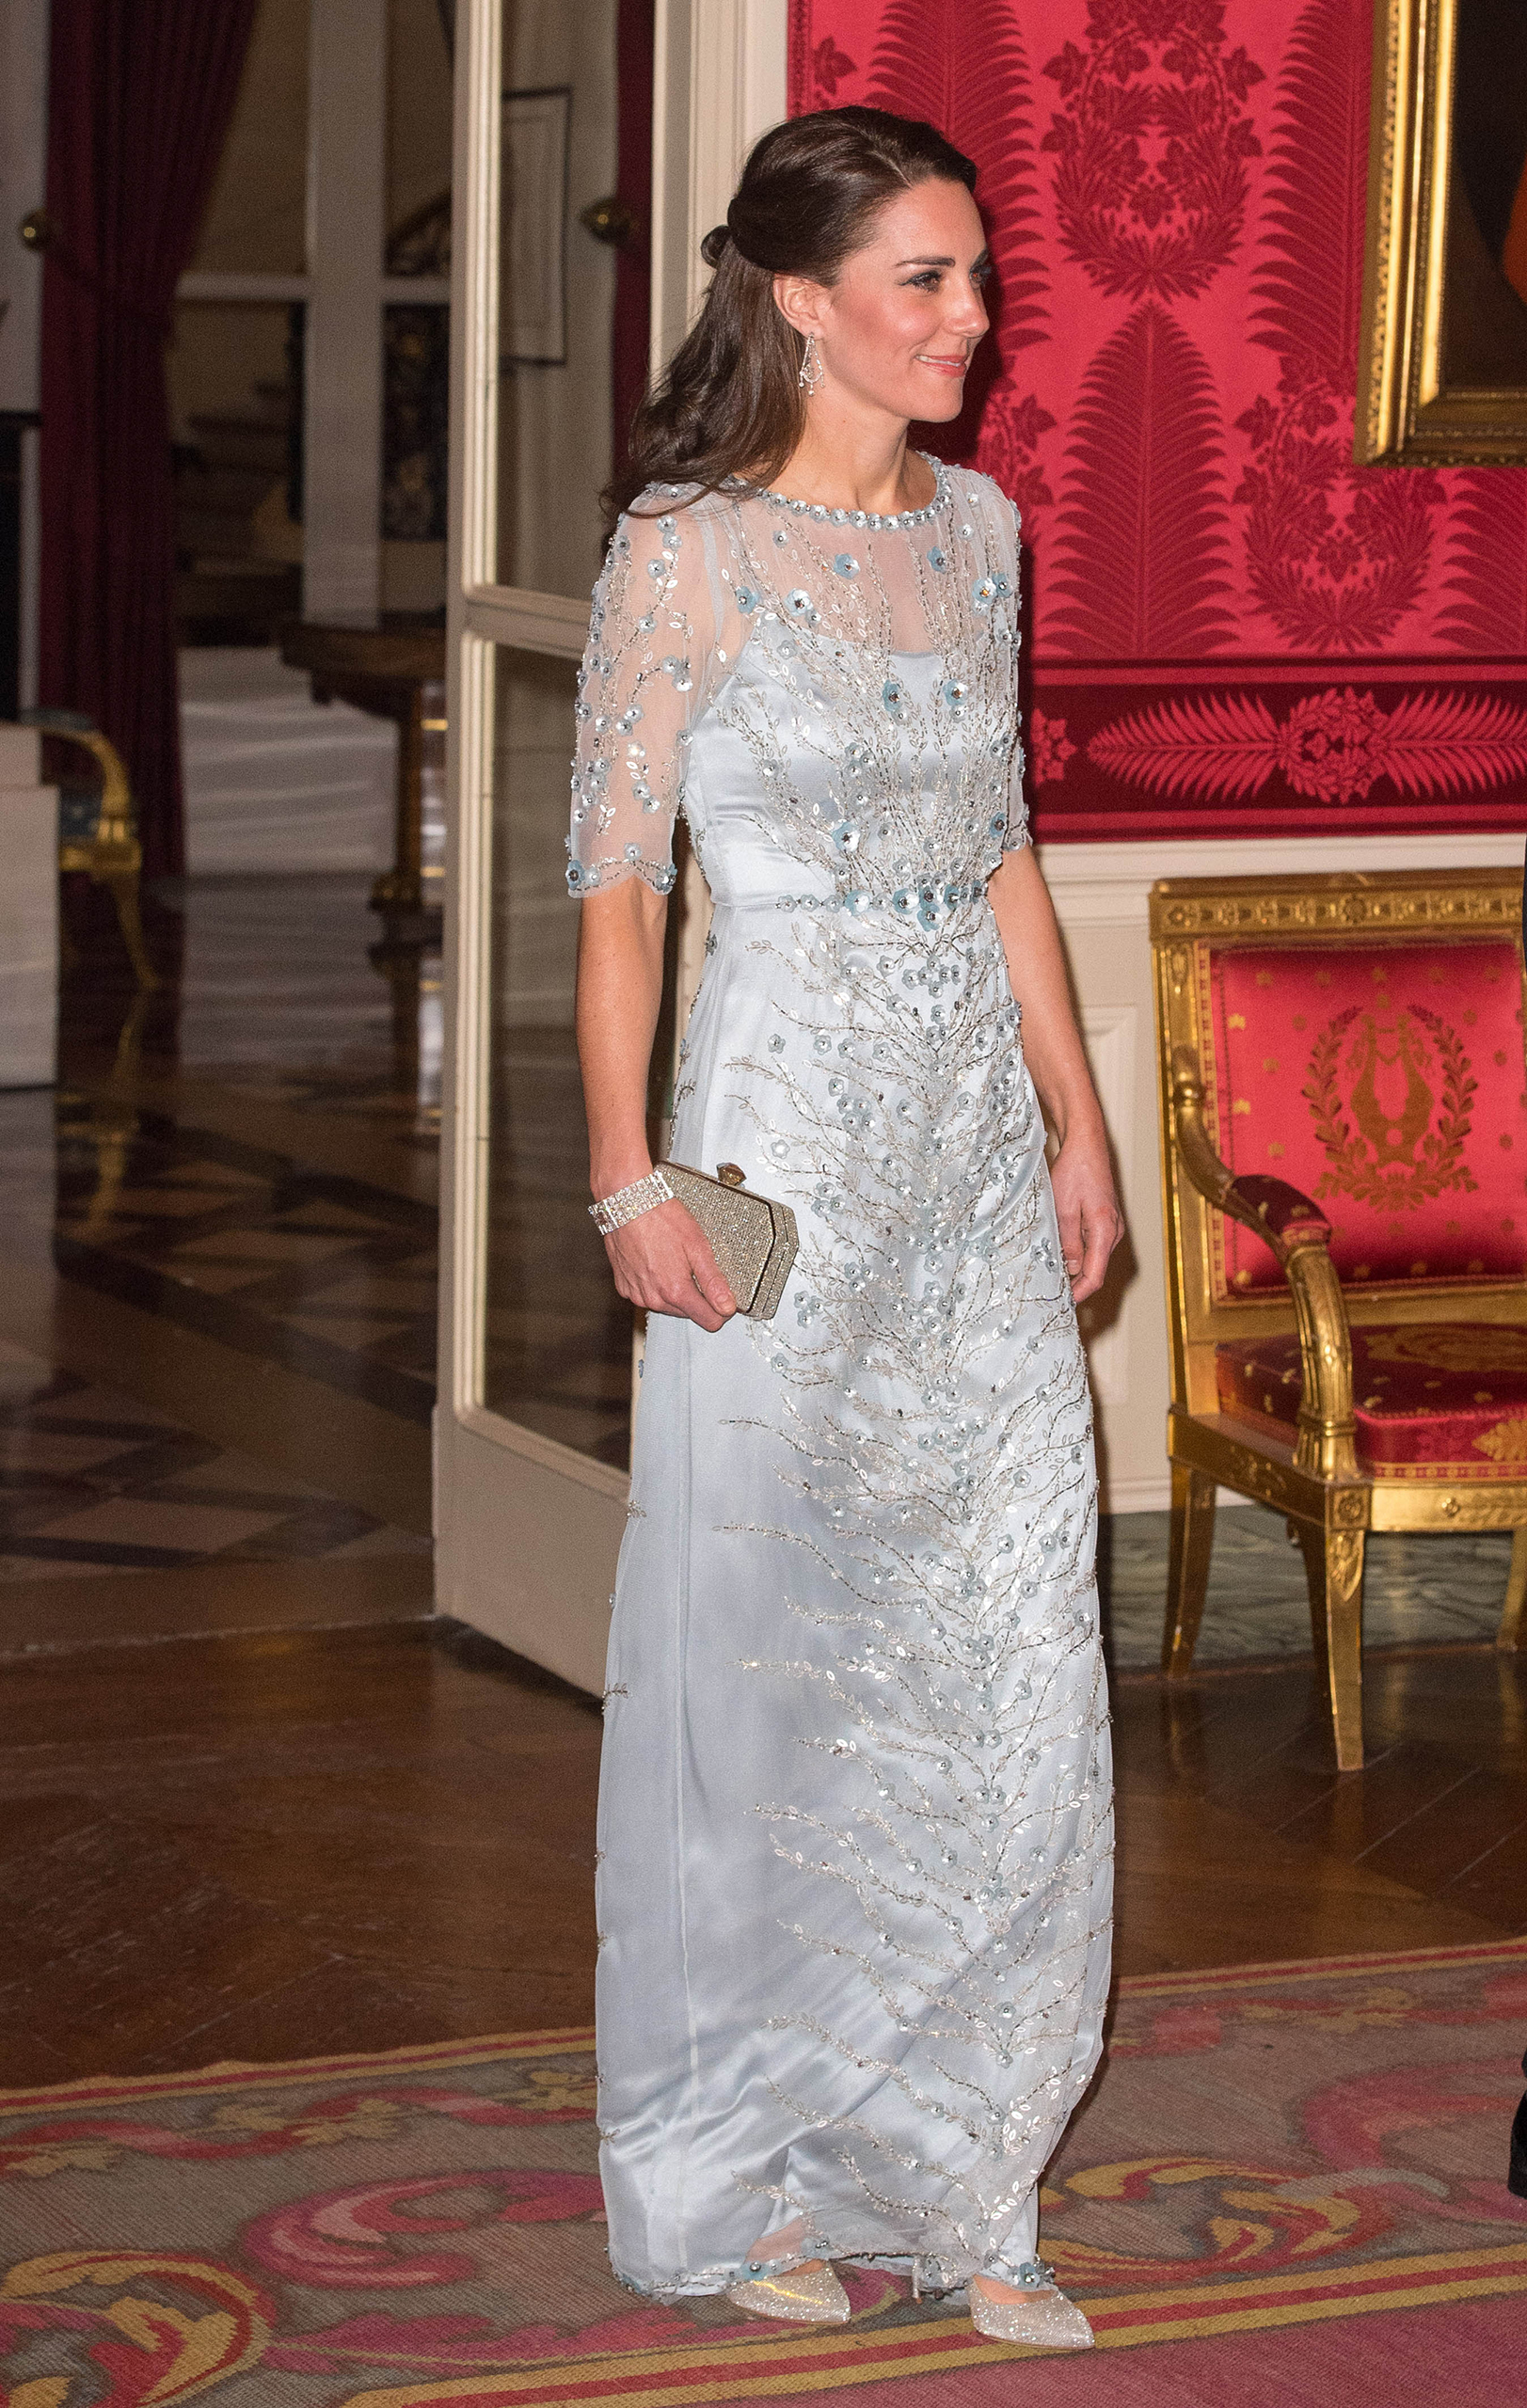 Catherine, Duchess of Cambridge, attends a dinner hosted by Her Majesty's Ambassador to France, Edward Llewellyn, at the British Embassy in Paris during a two-day visit on March 17, 2017.